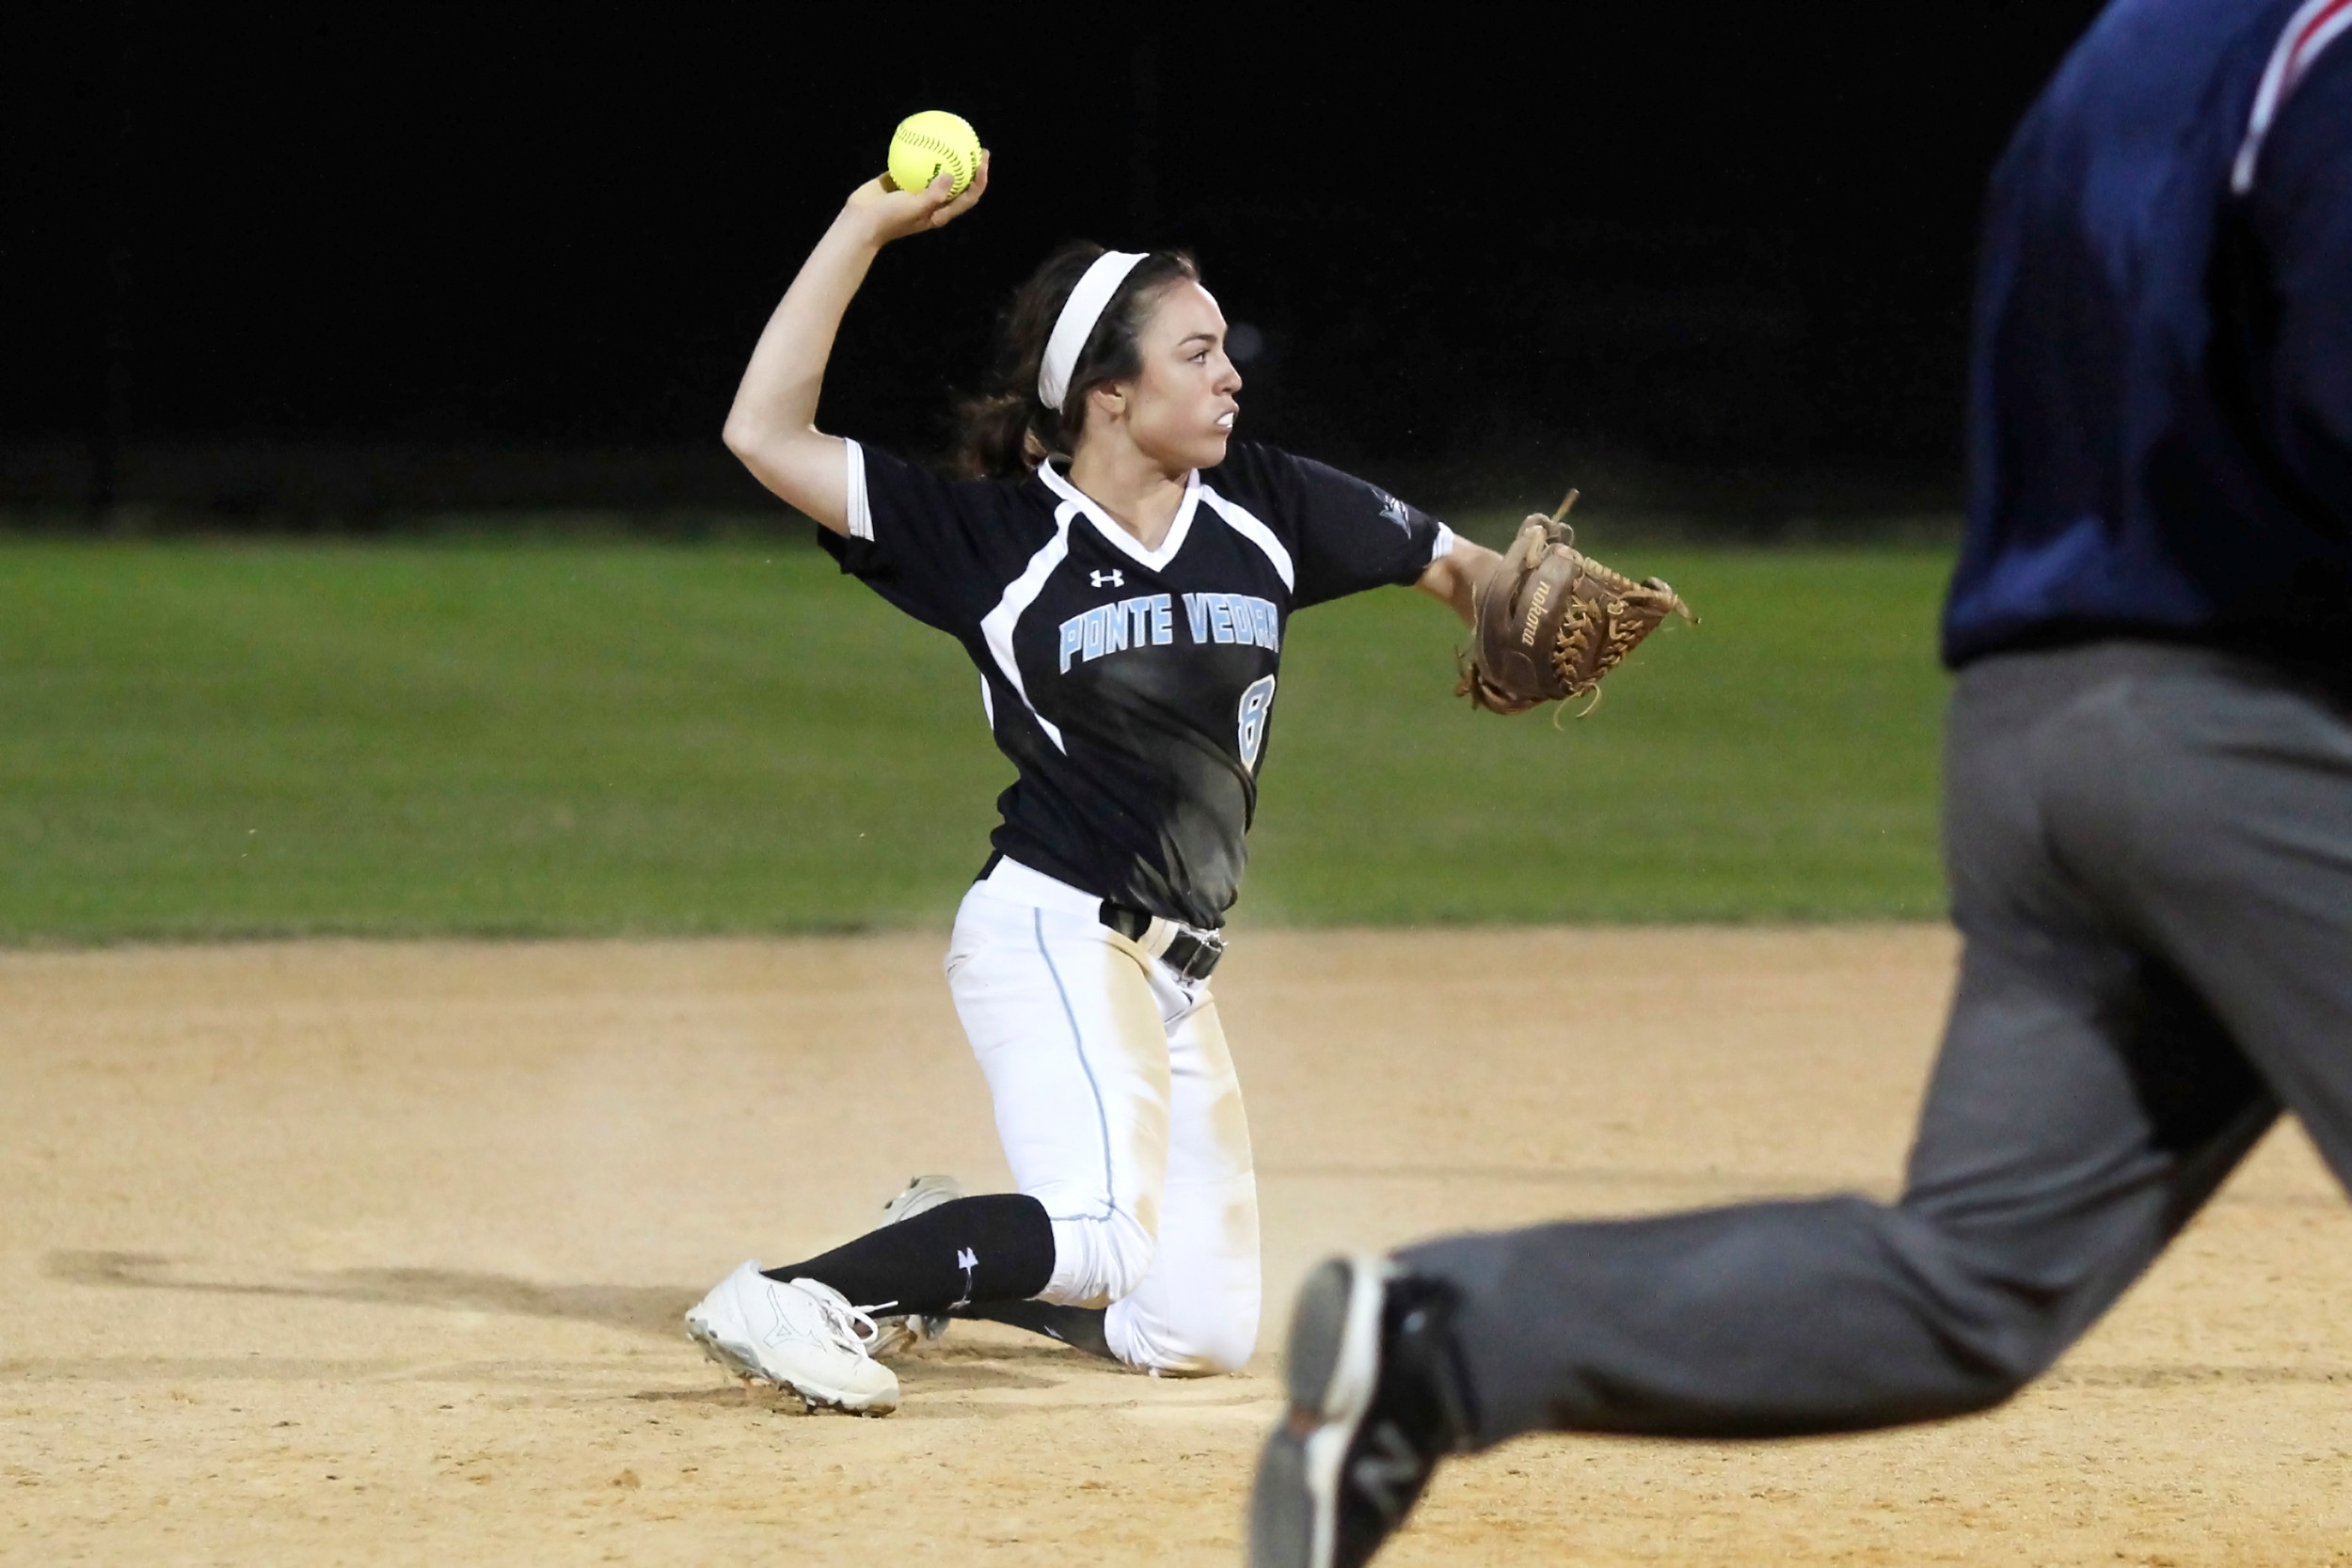 #8 Michelle Leone throws from her knees to get the force out